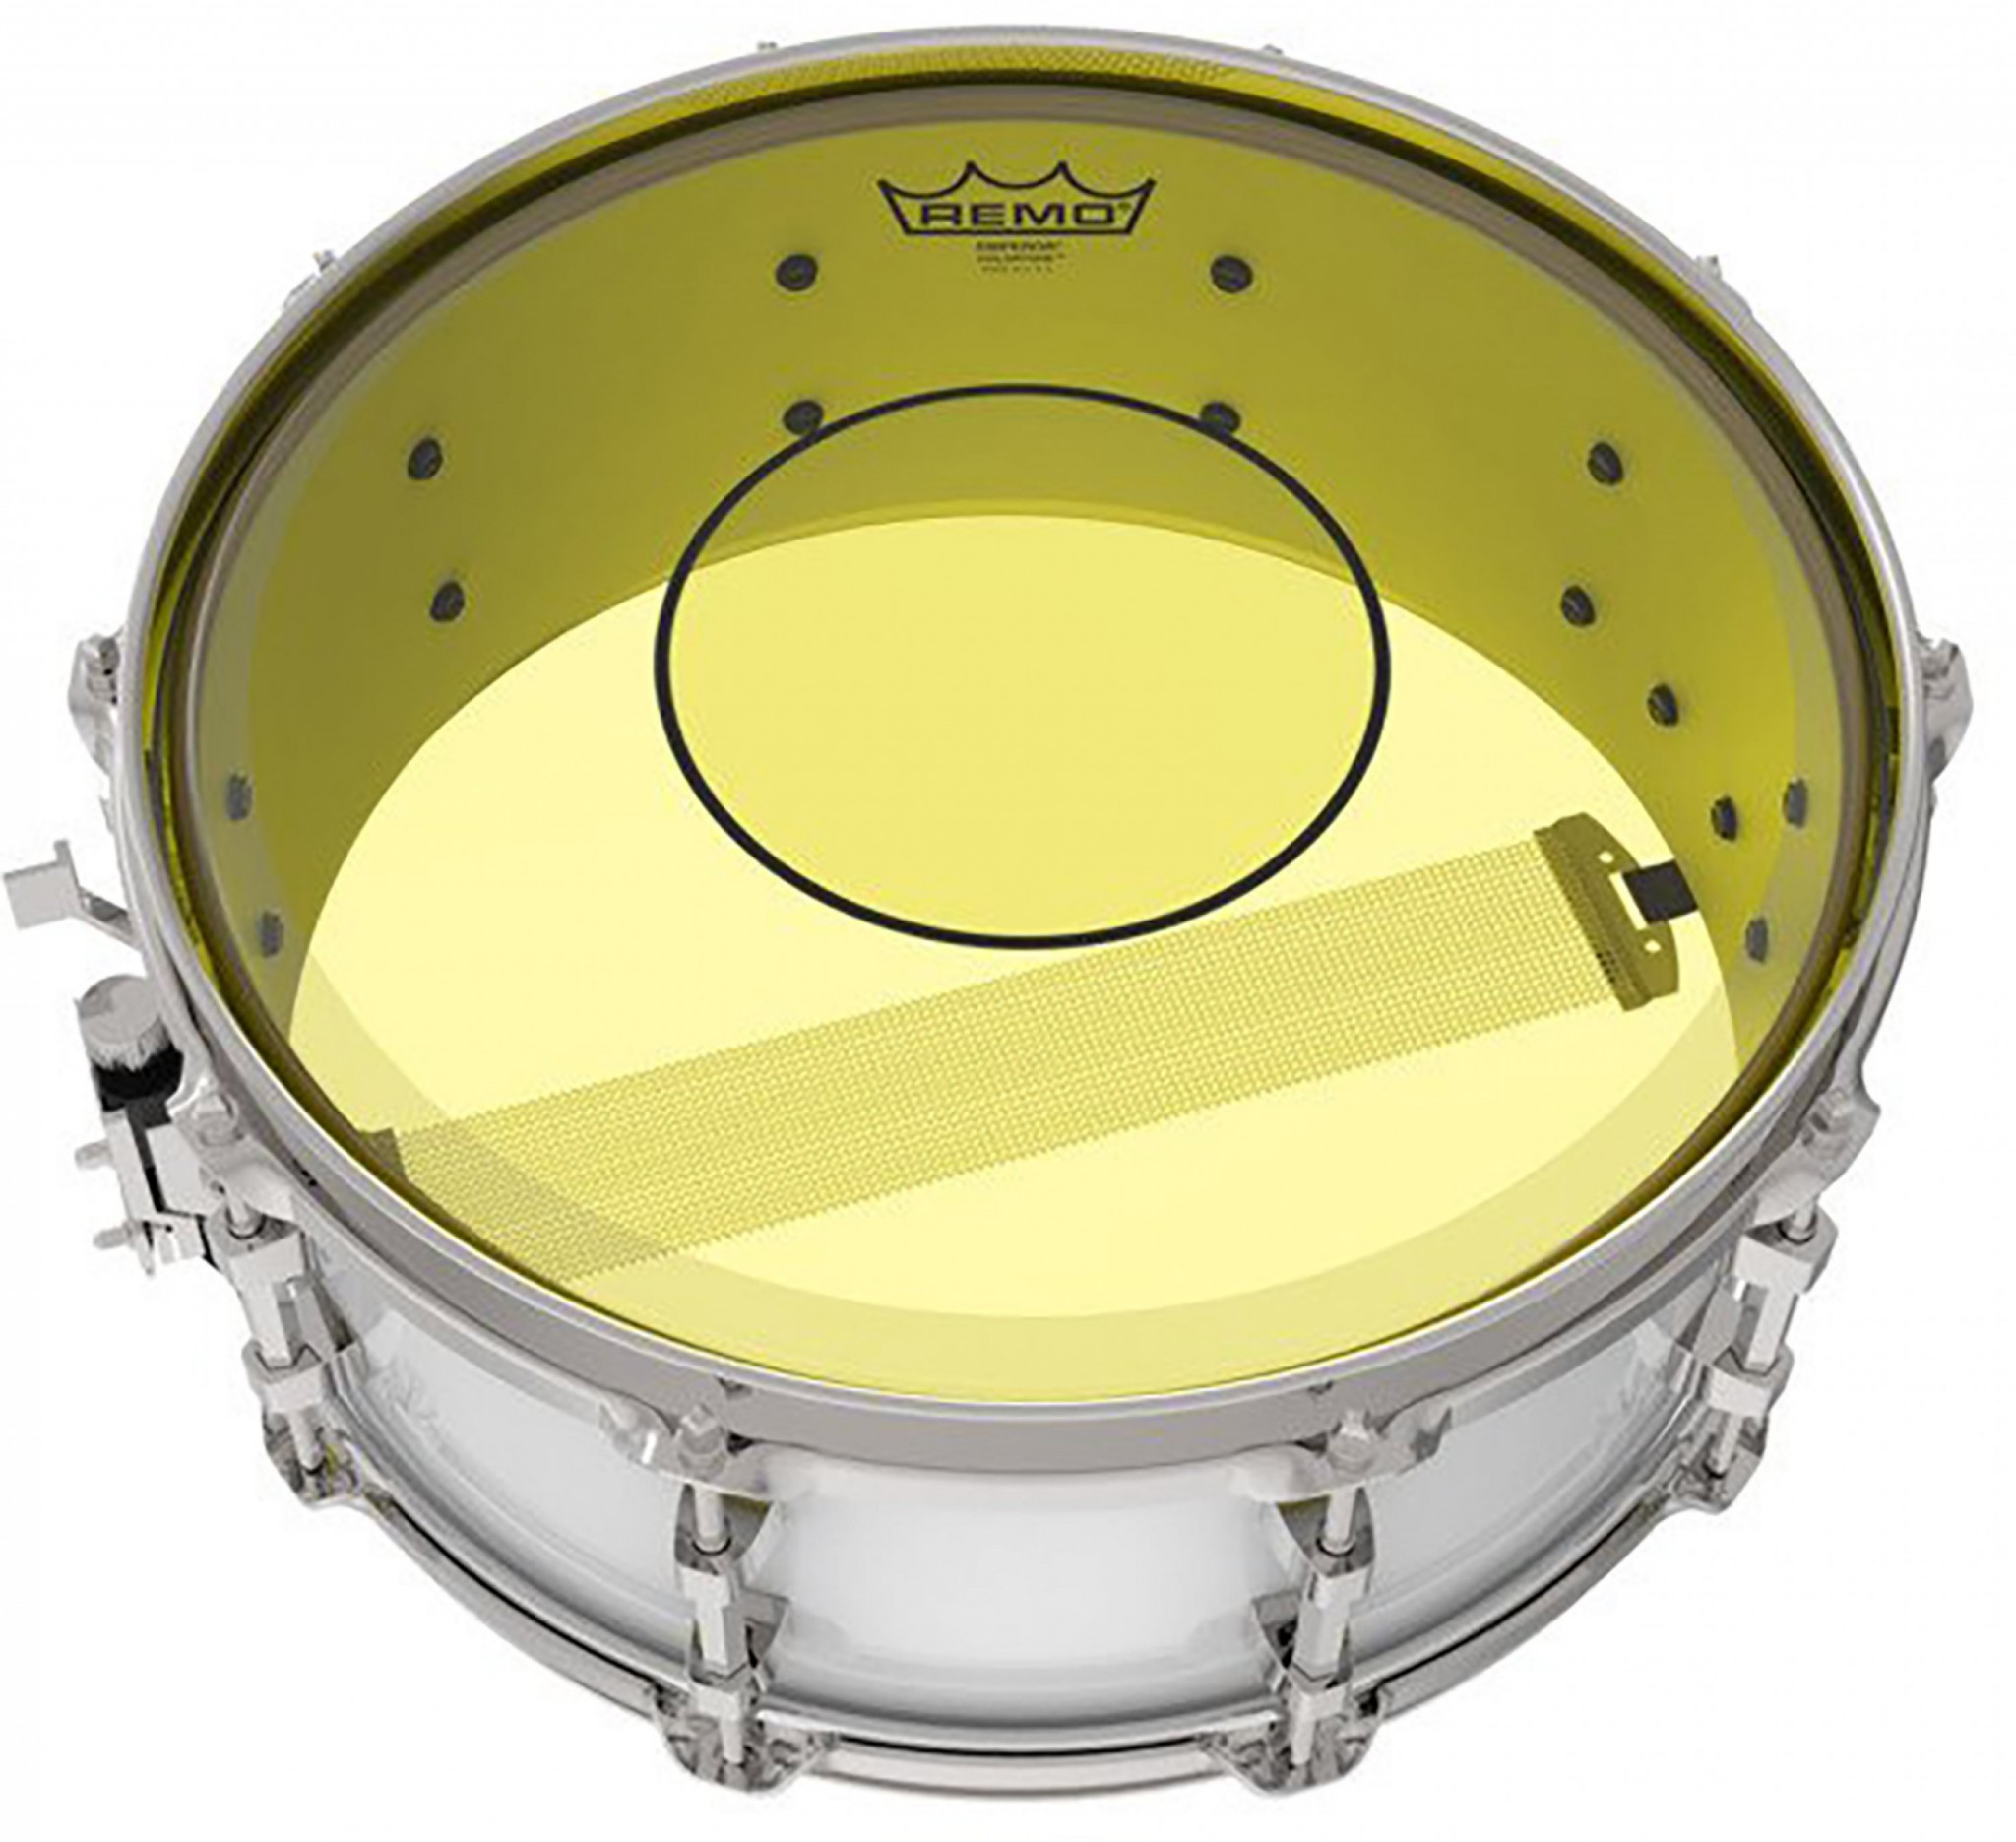 remo 14 powerstroke 77 colortone yellow snare drum head p7 0314 ct ye rockem music. Black Bedroom Furniture Sets. Home Design Ideas